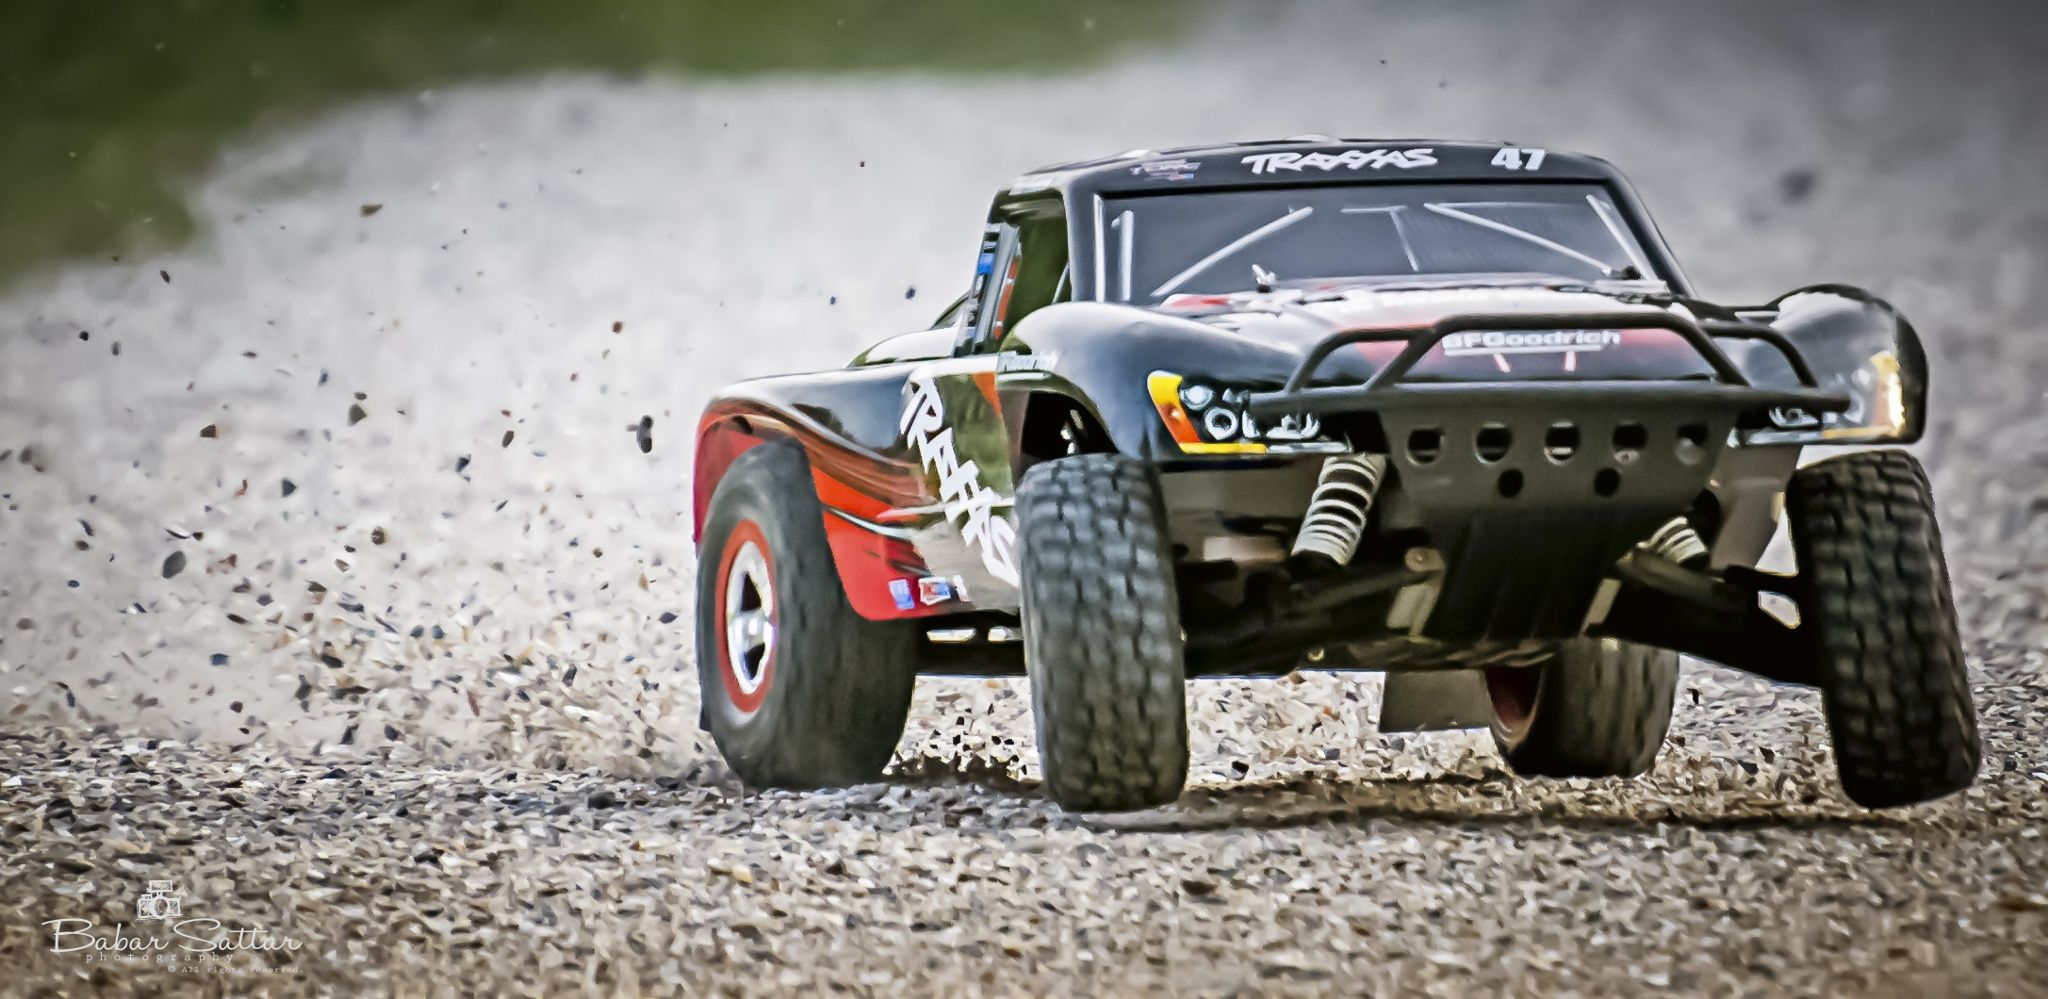 Let s spread some Gravel by Babar Sattar on 500px Traxxas Slash 2wd in an offroad